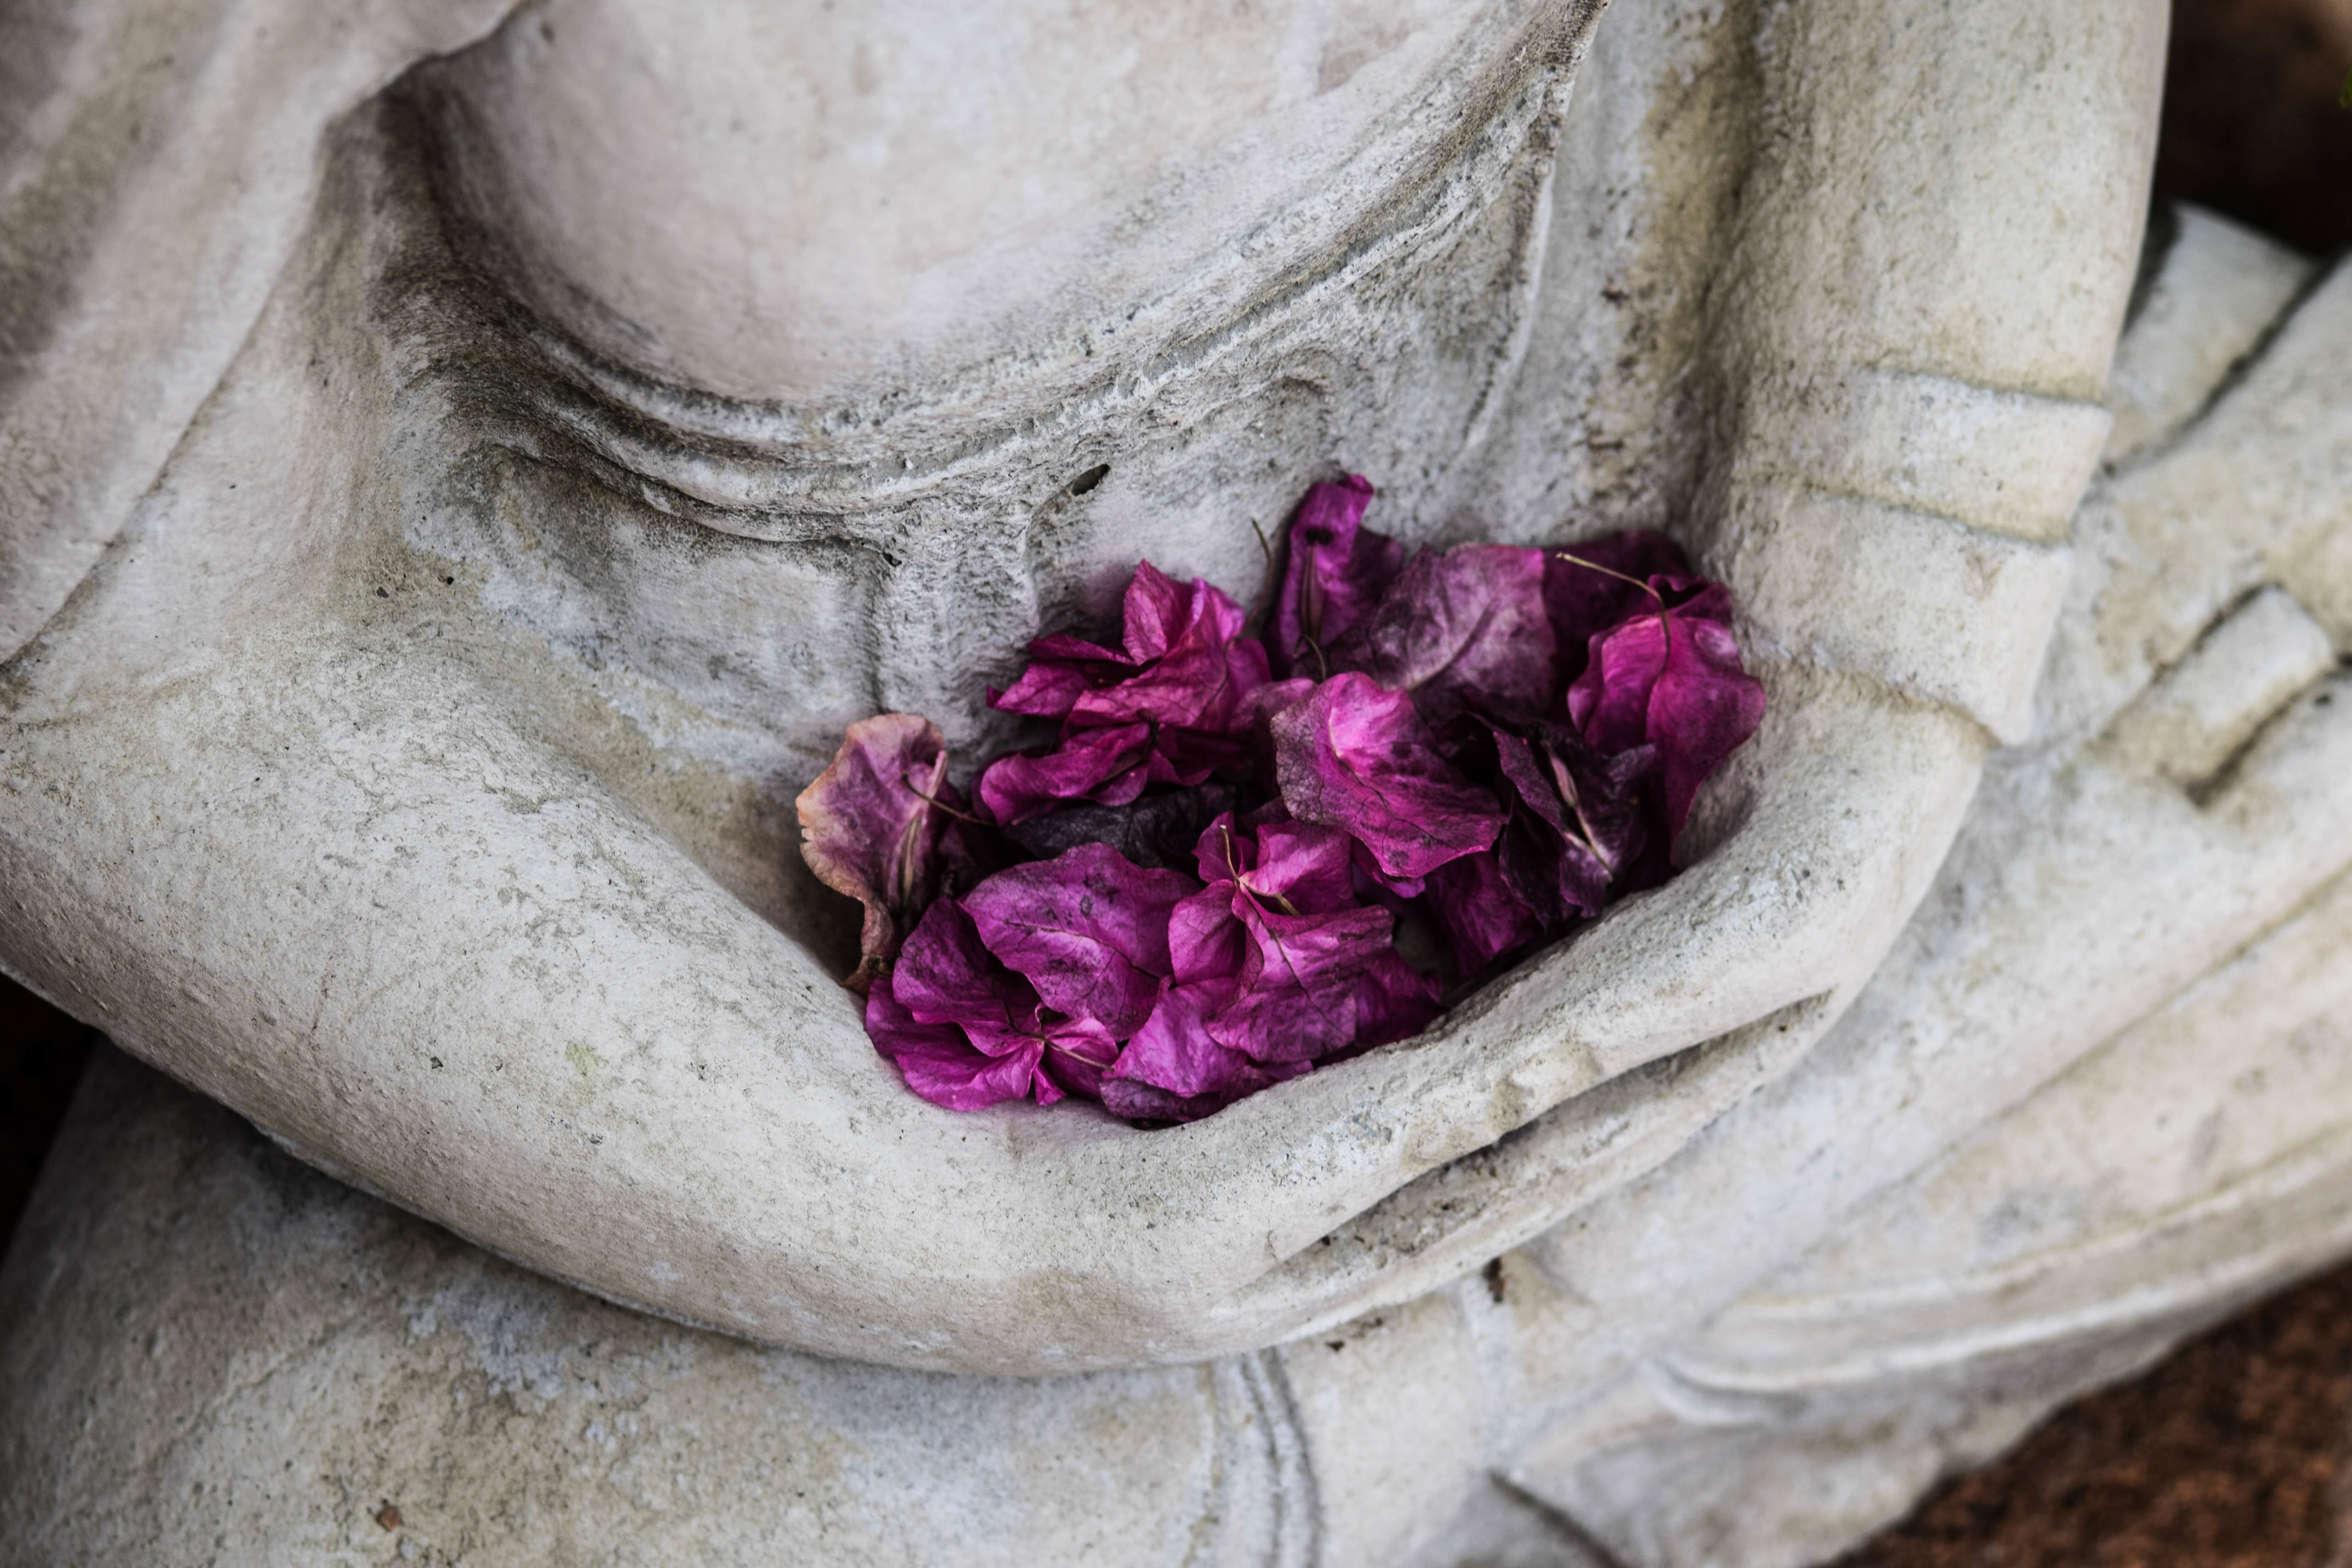 buddha statute with flowers in his lap